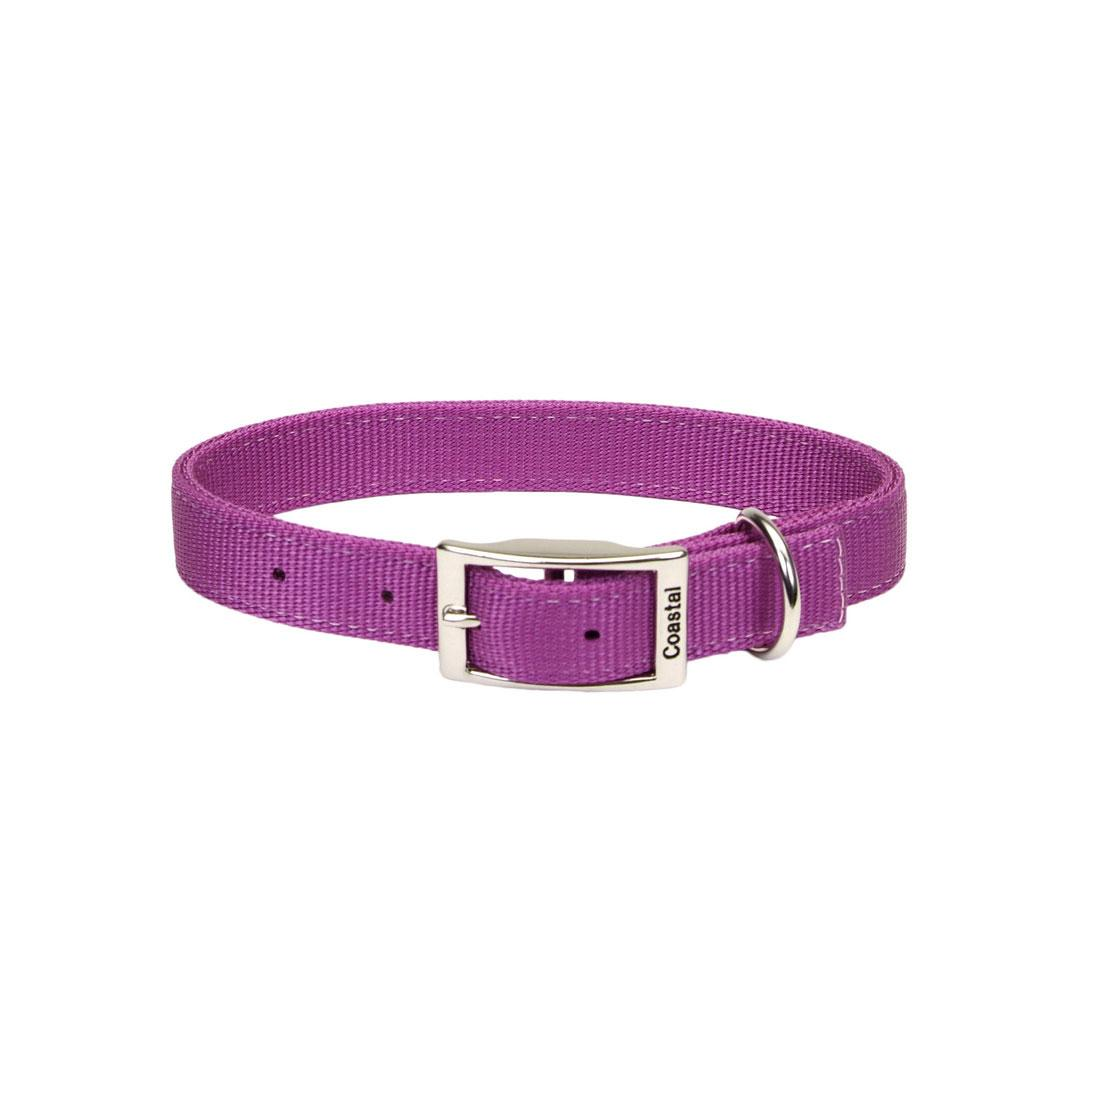 Coastal Double-Ply Dog Collar, Orchid, 1-in x 22-in